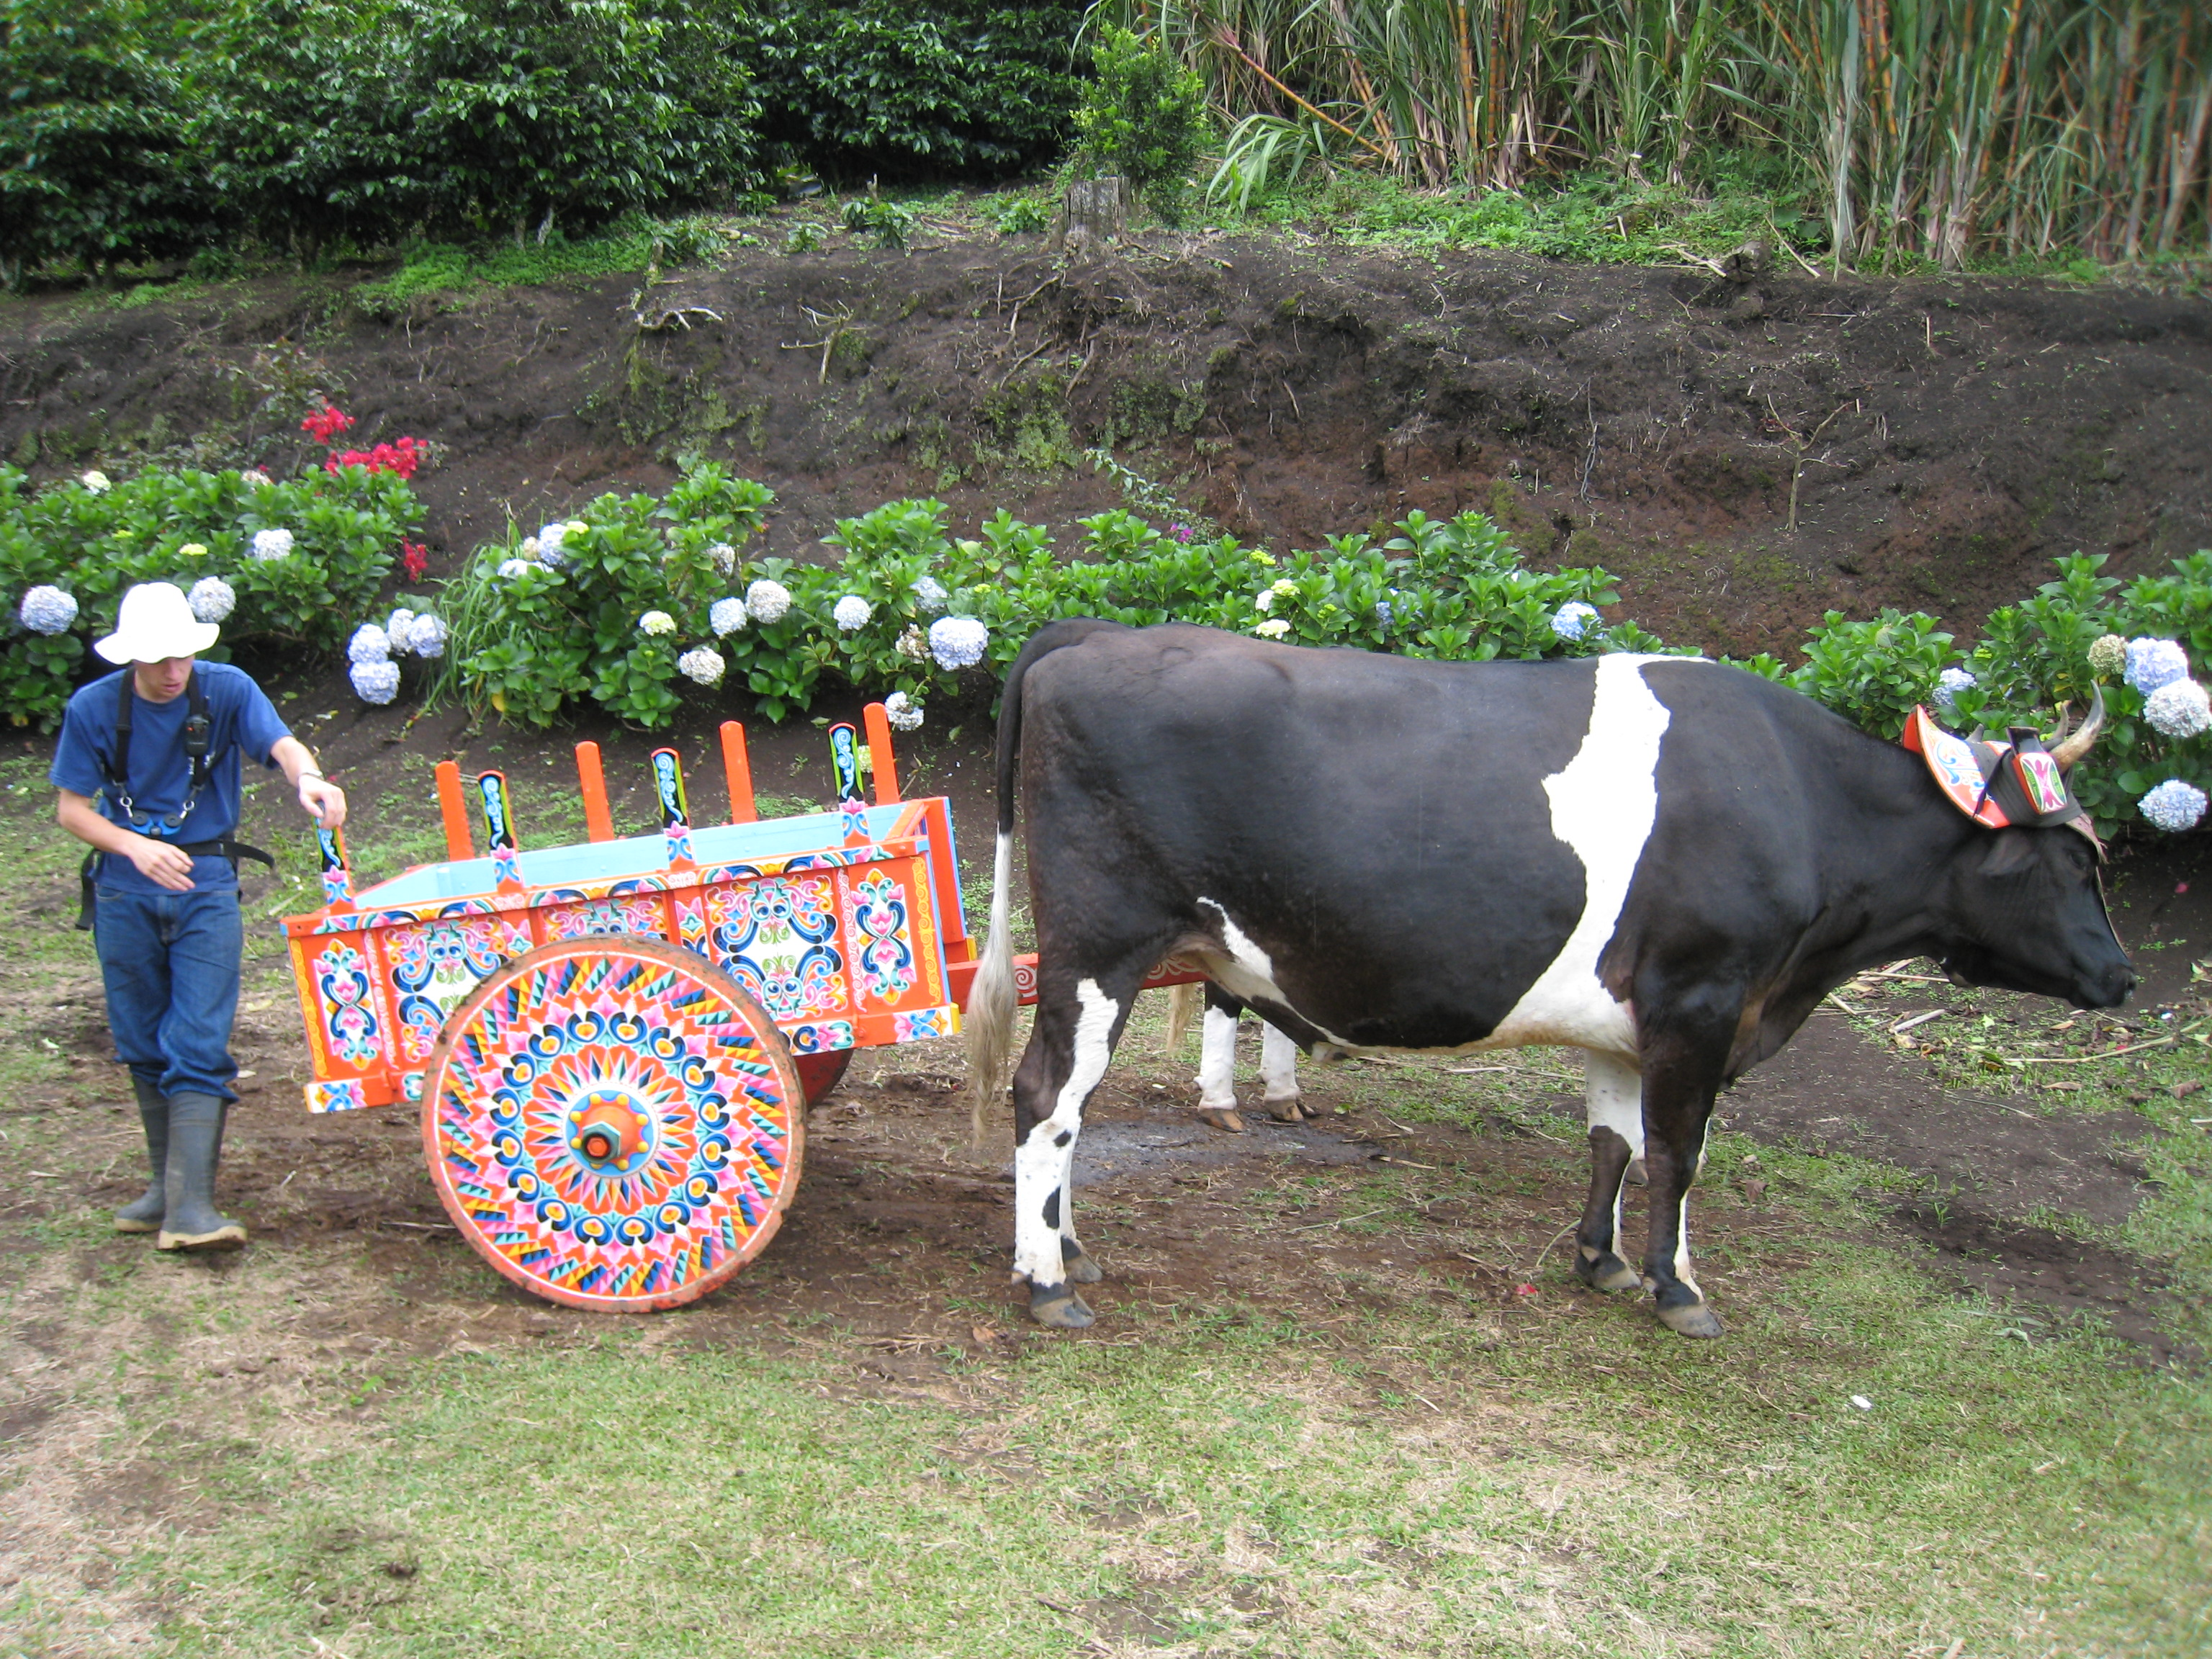 File The Cow Pushing The Decorated Cart Jpg Wikimedia Commons